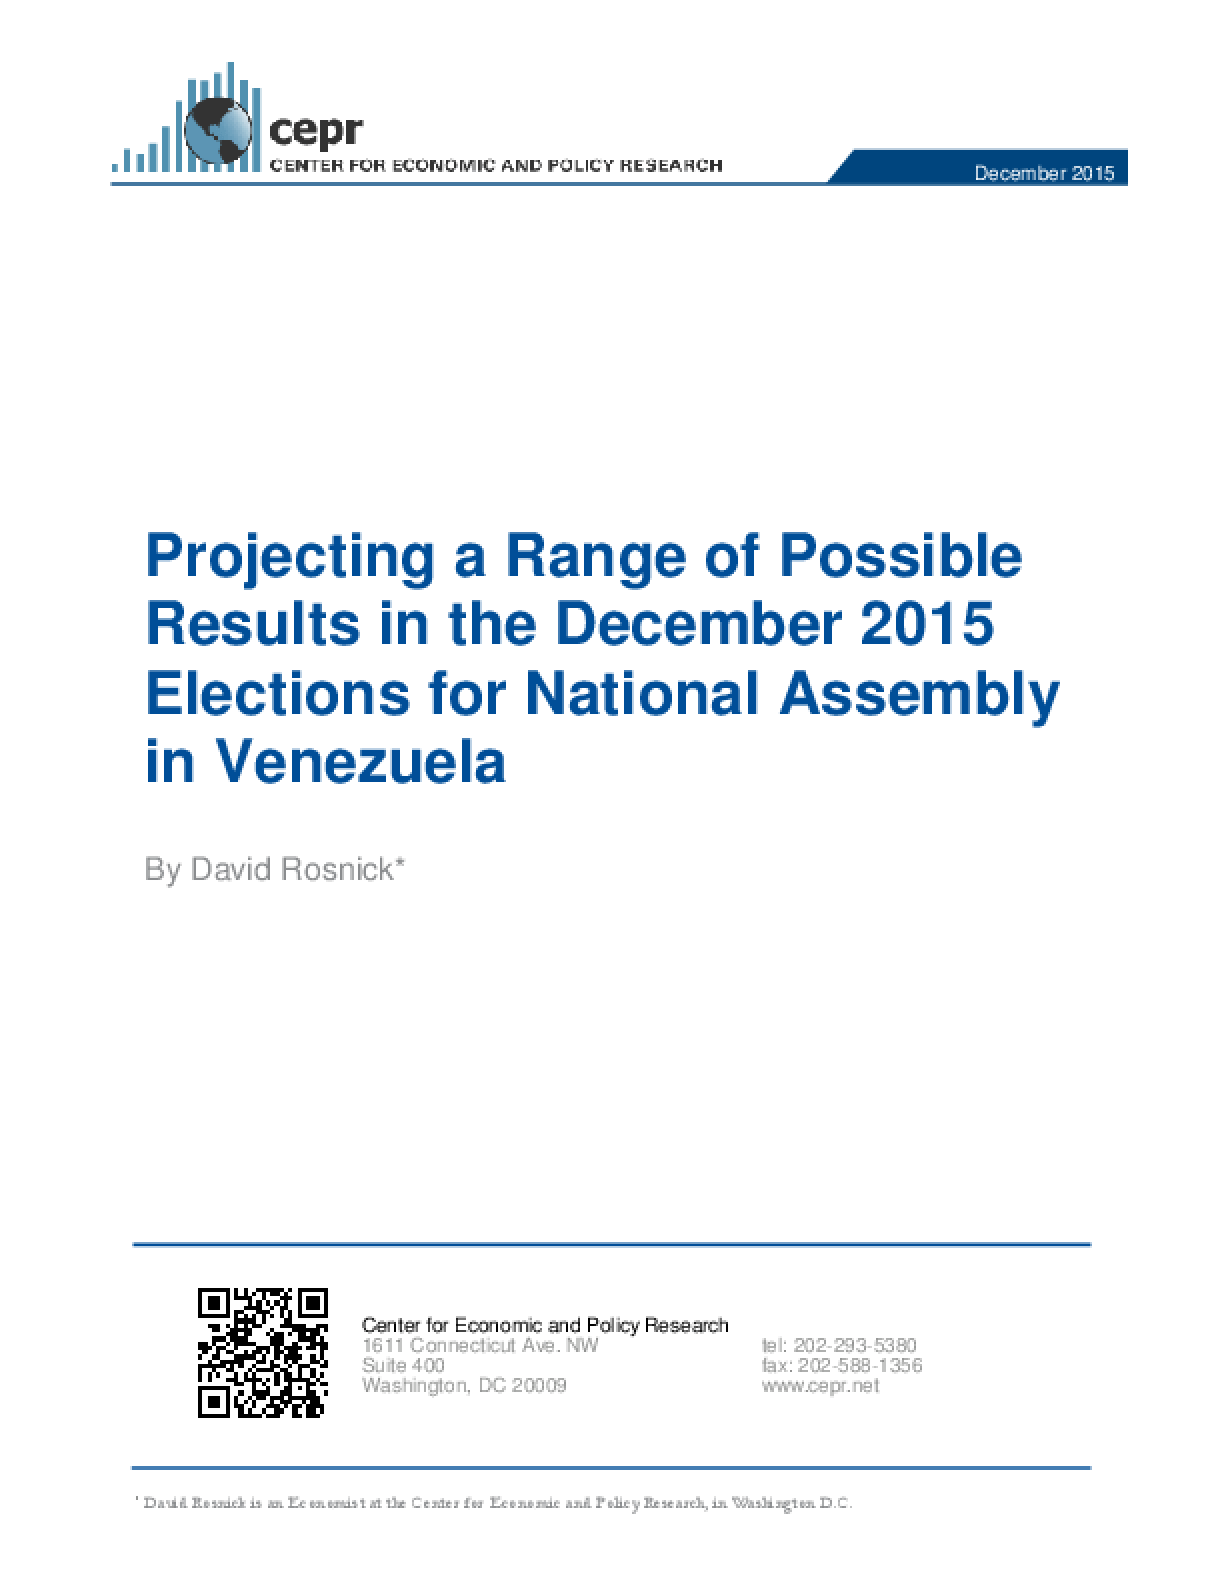 Projecting a Range of Possible Results in the December 2015 Elections for National Assembly in Venezuela